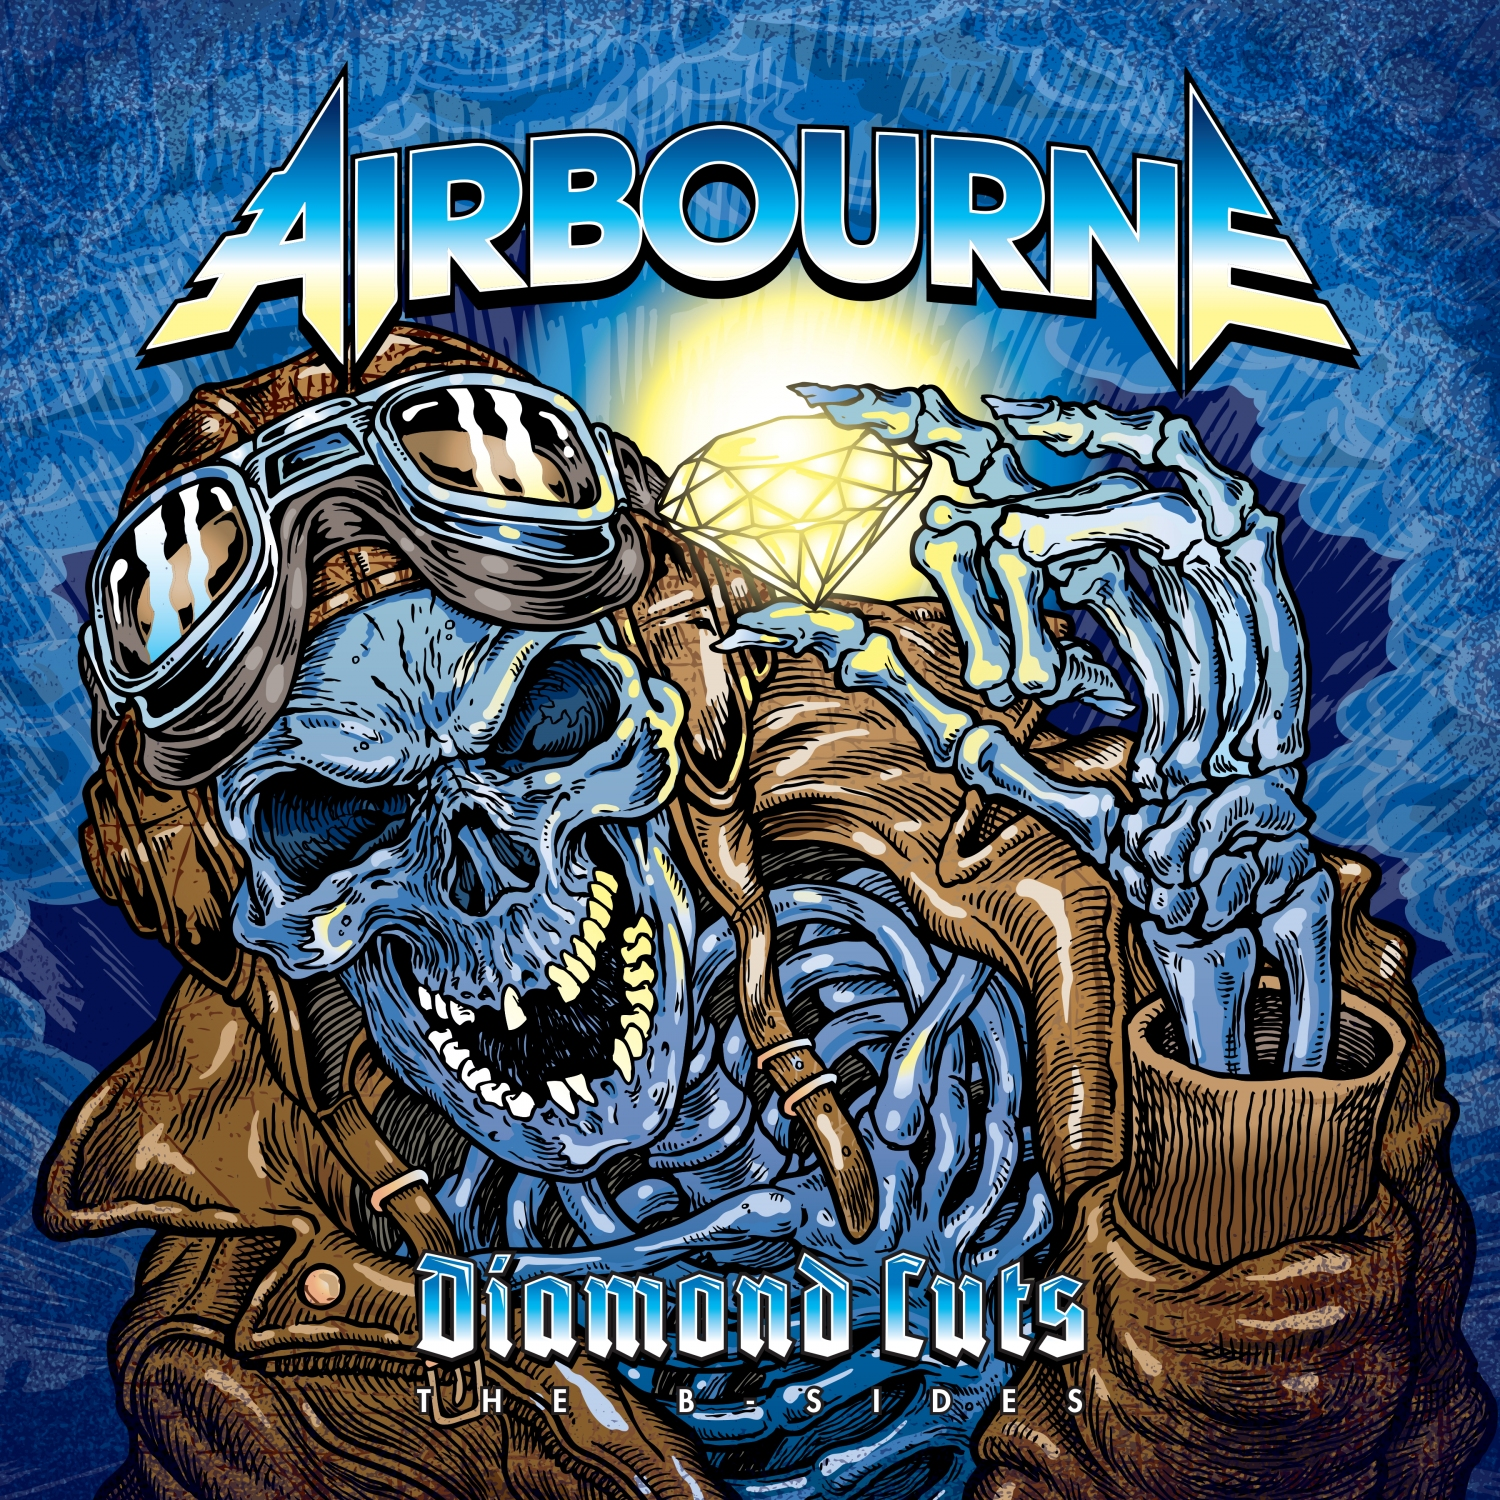 Airbourne – Diamond Cuts Album Review